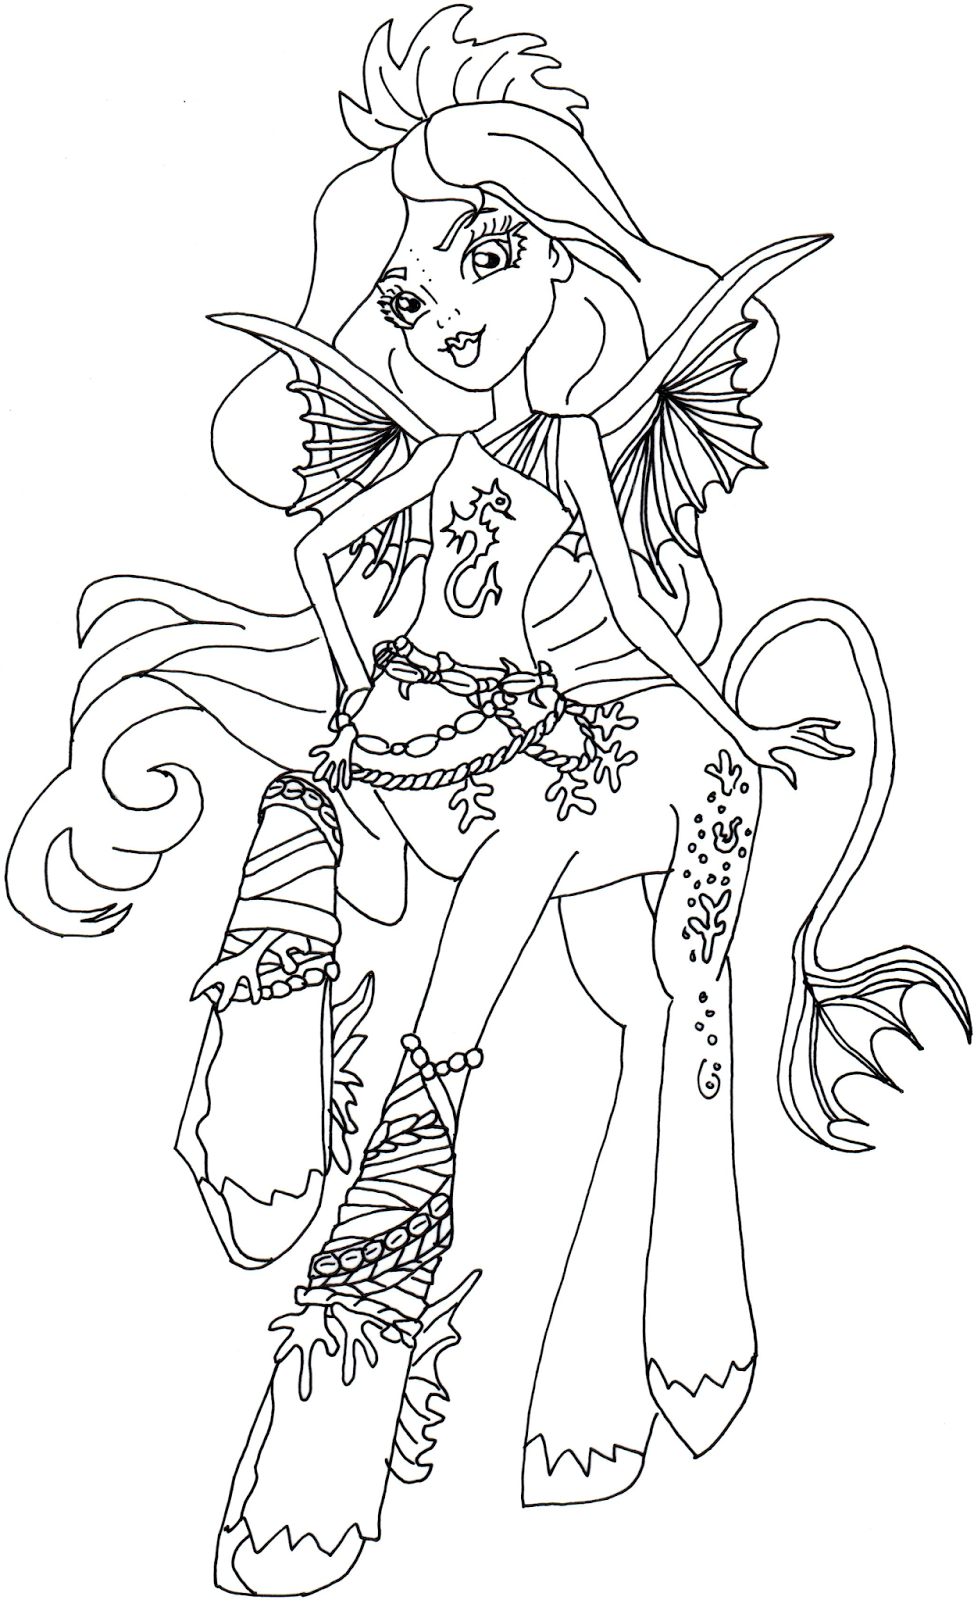 Free Printable Monster High Coloring Pages: November 2015